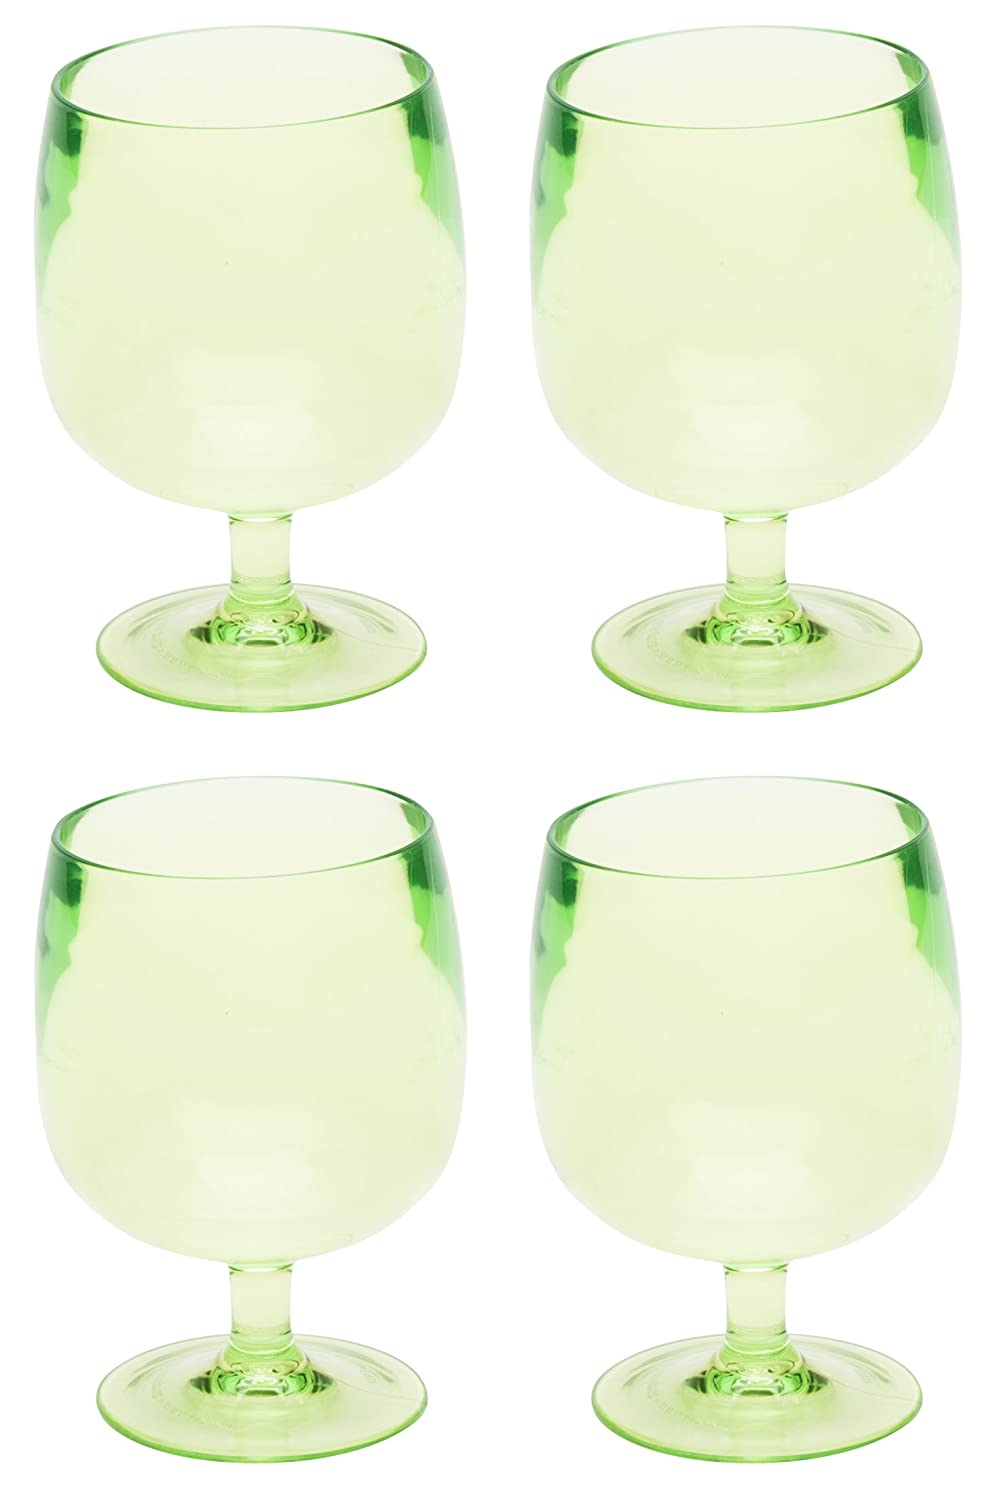 絶対一番安い (Kiwi) - Zak Zak Designs キウイ Stacky 4-Piece Plastic Cordial Glass Stacky Set, 70ml, Kiwi キウイ B00HD7GYI0, フラワーショップ ラ フランス:a6dd2f37 --- a0267596.xsph.ru